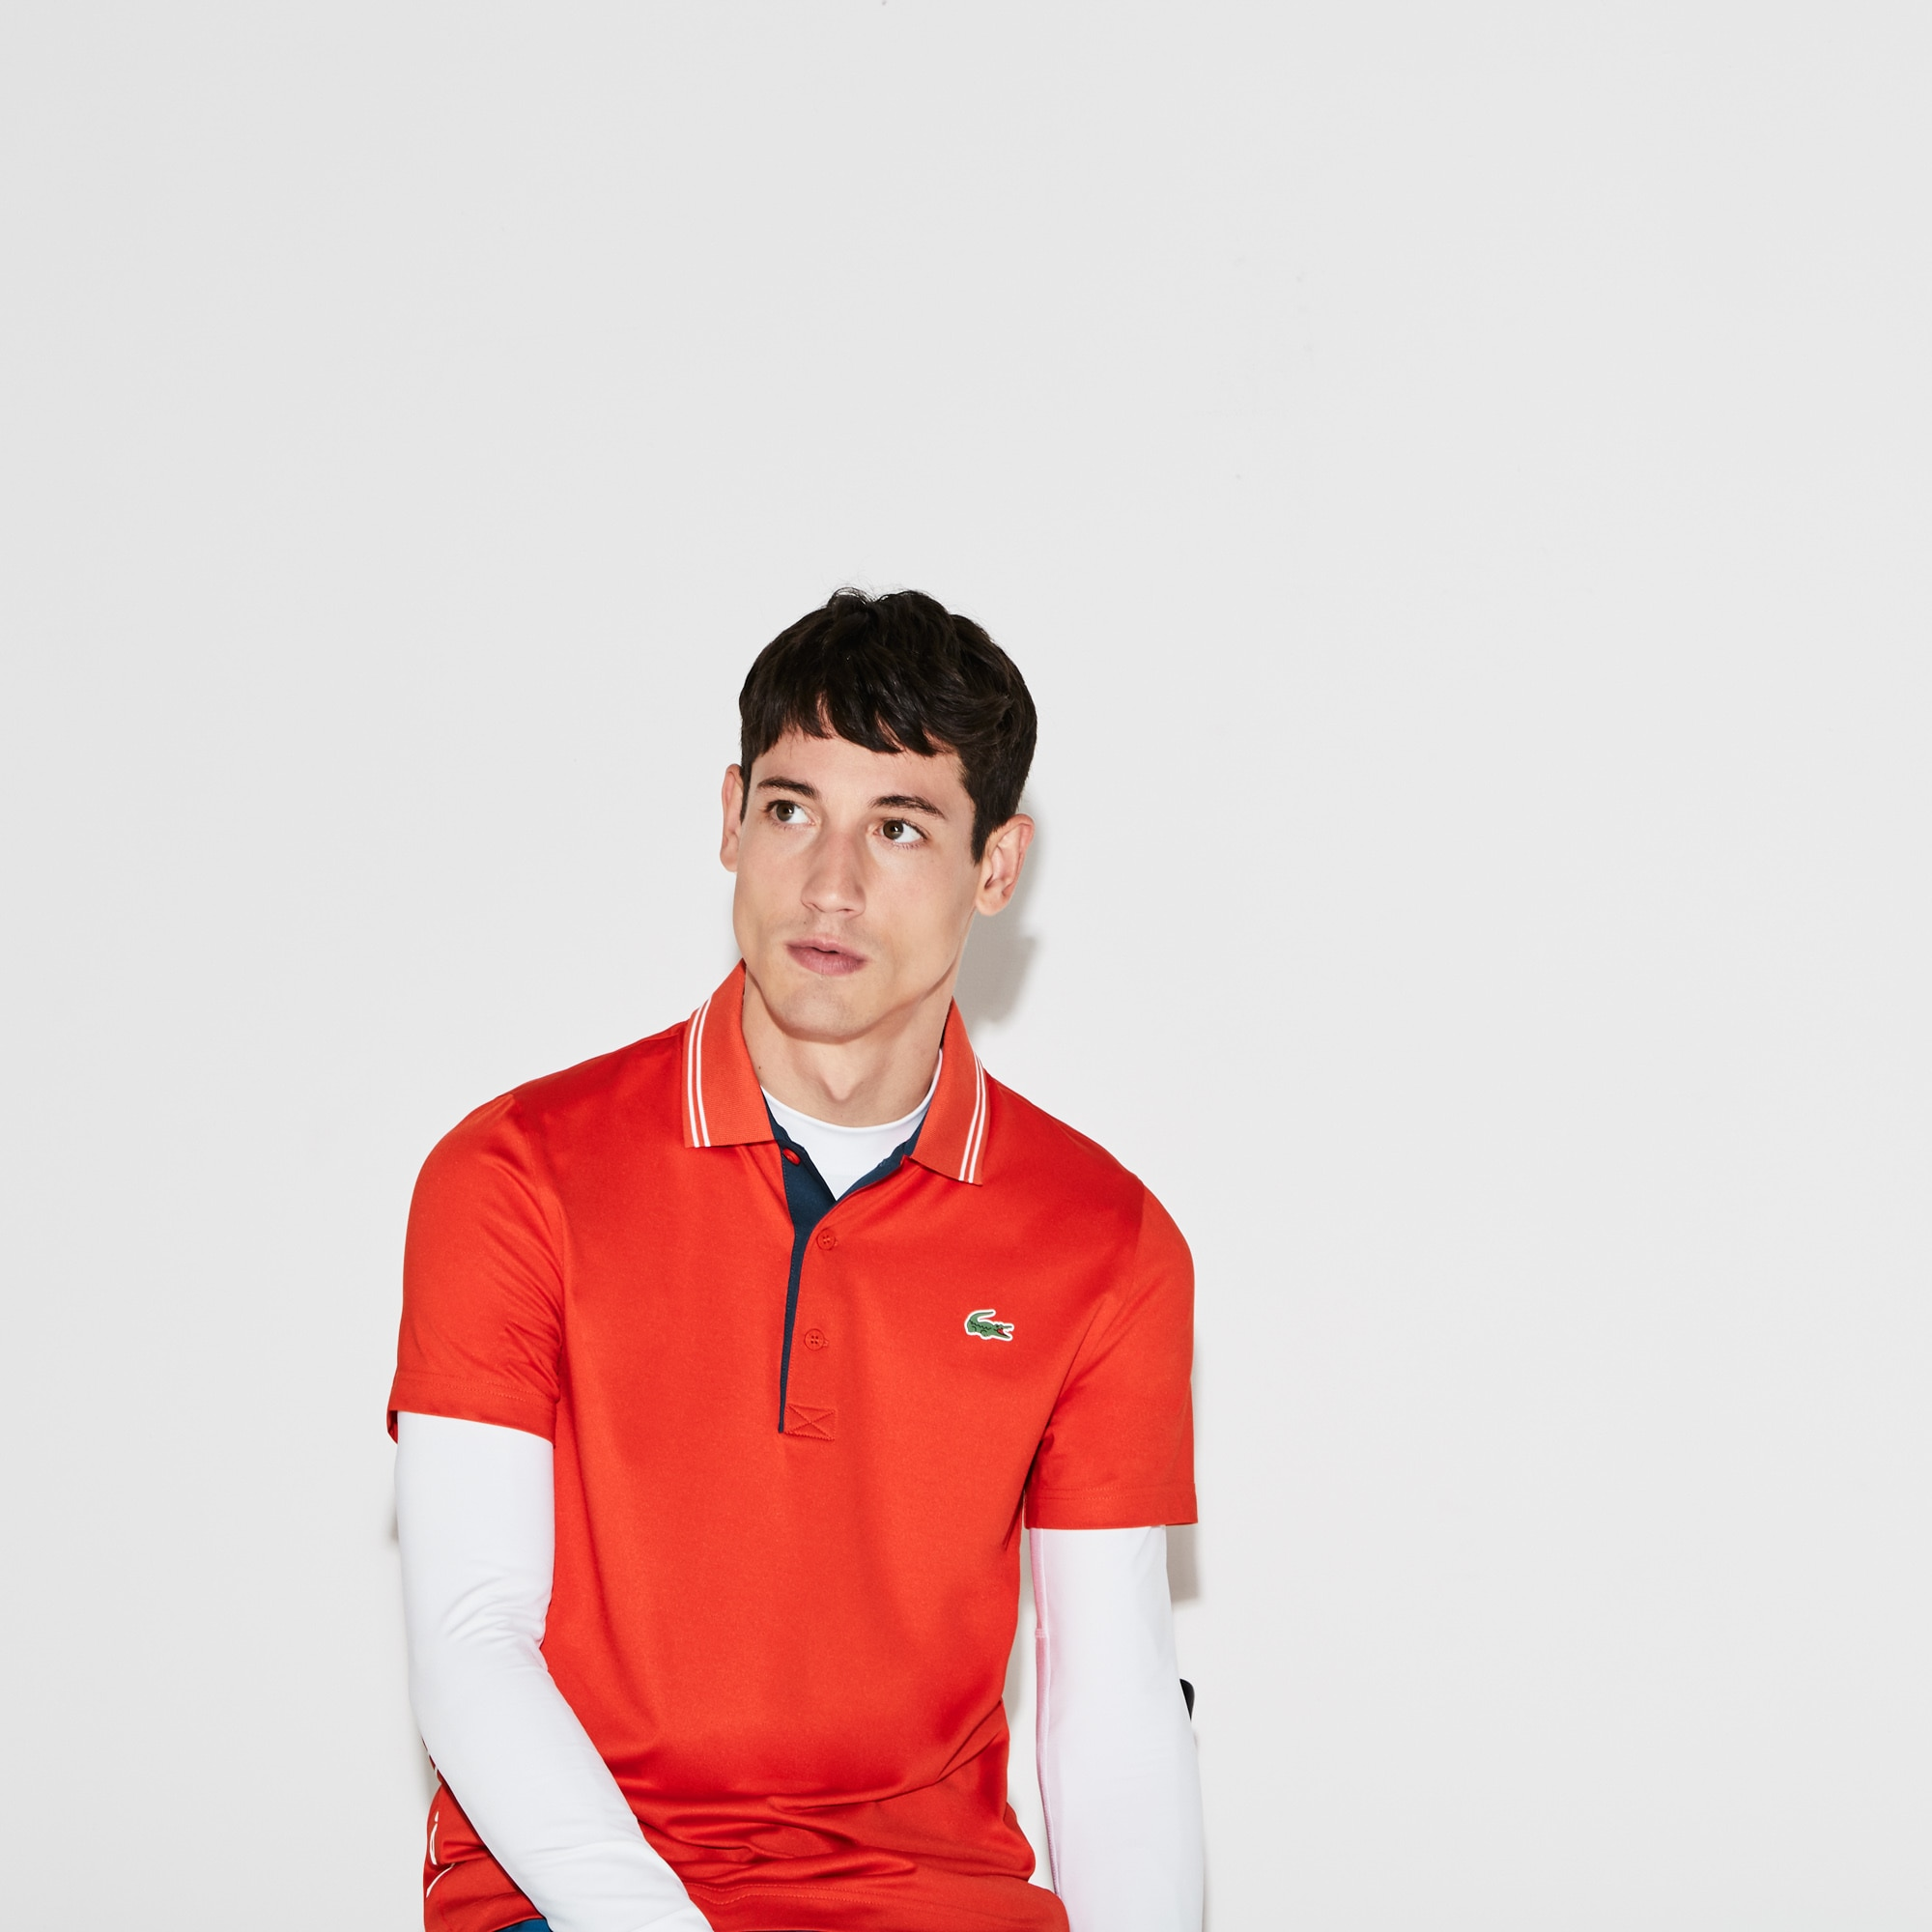 Men's  SPORT Lettering Stretch Technical Jersey Golf Polo Shirt